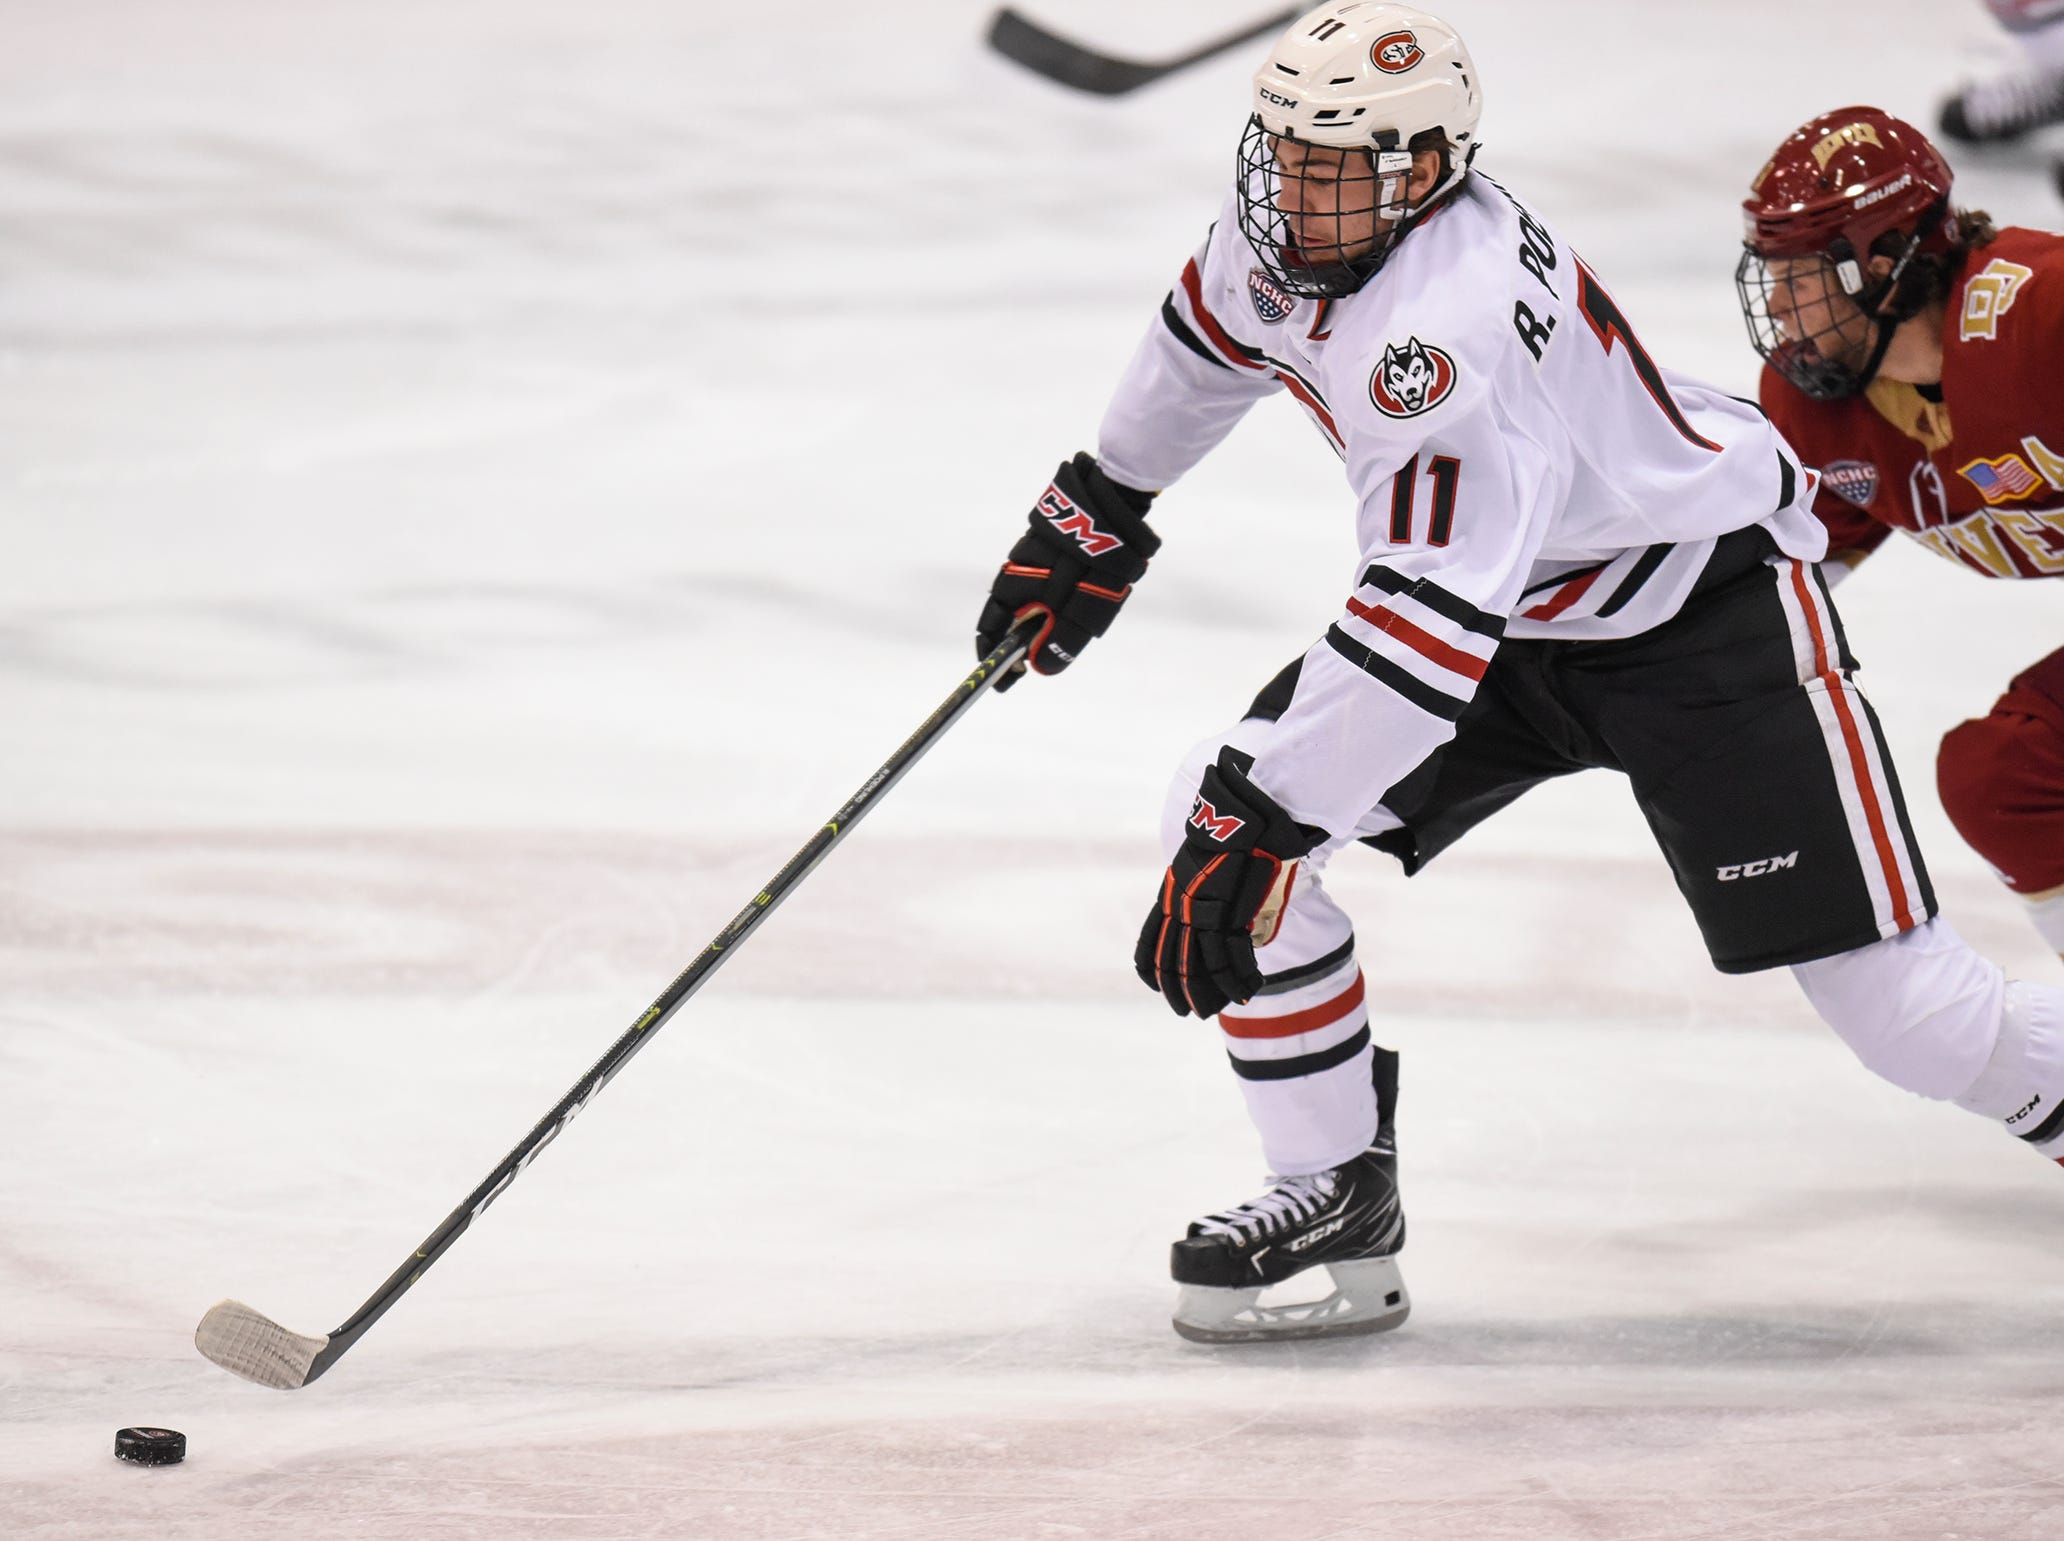 St. Cloud State's Ryan Poehling skates with the puck during the first period of the Saturday, Nov. 10, game against the University of Denver at the Herb Brooks National Hockey Center in St. Cloud.